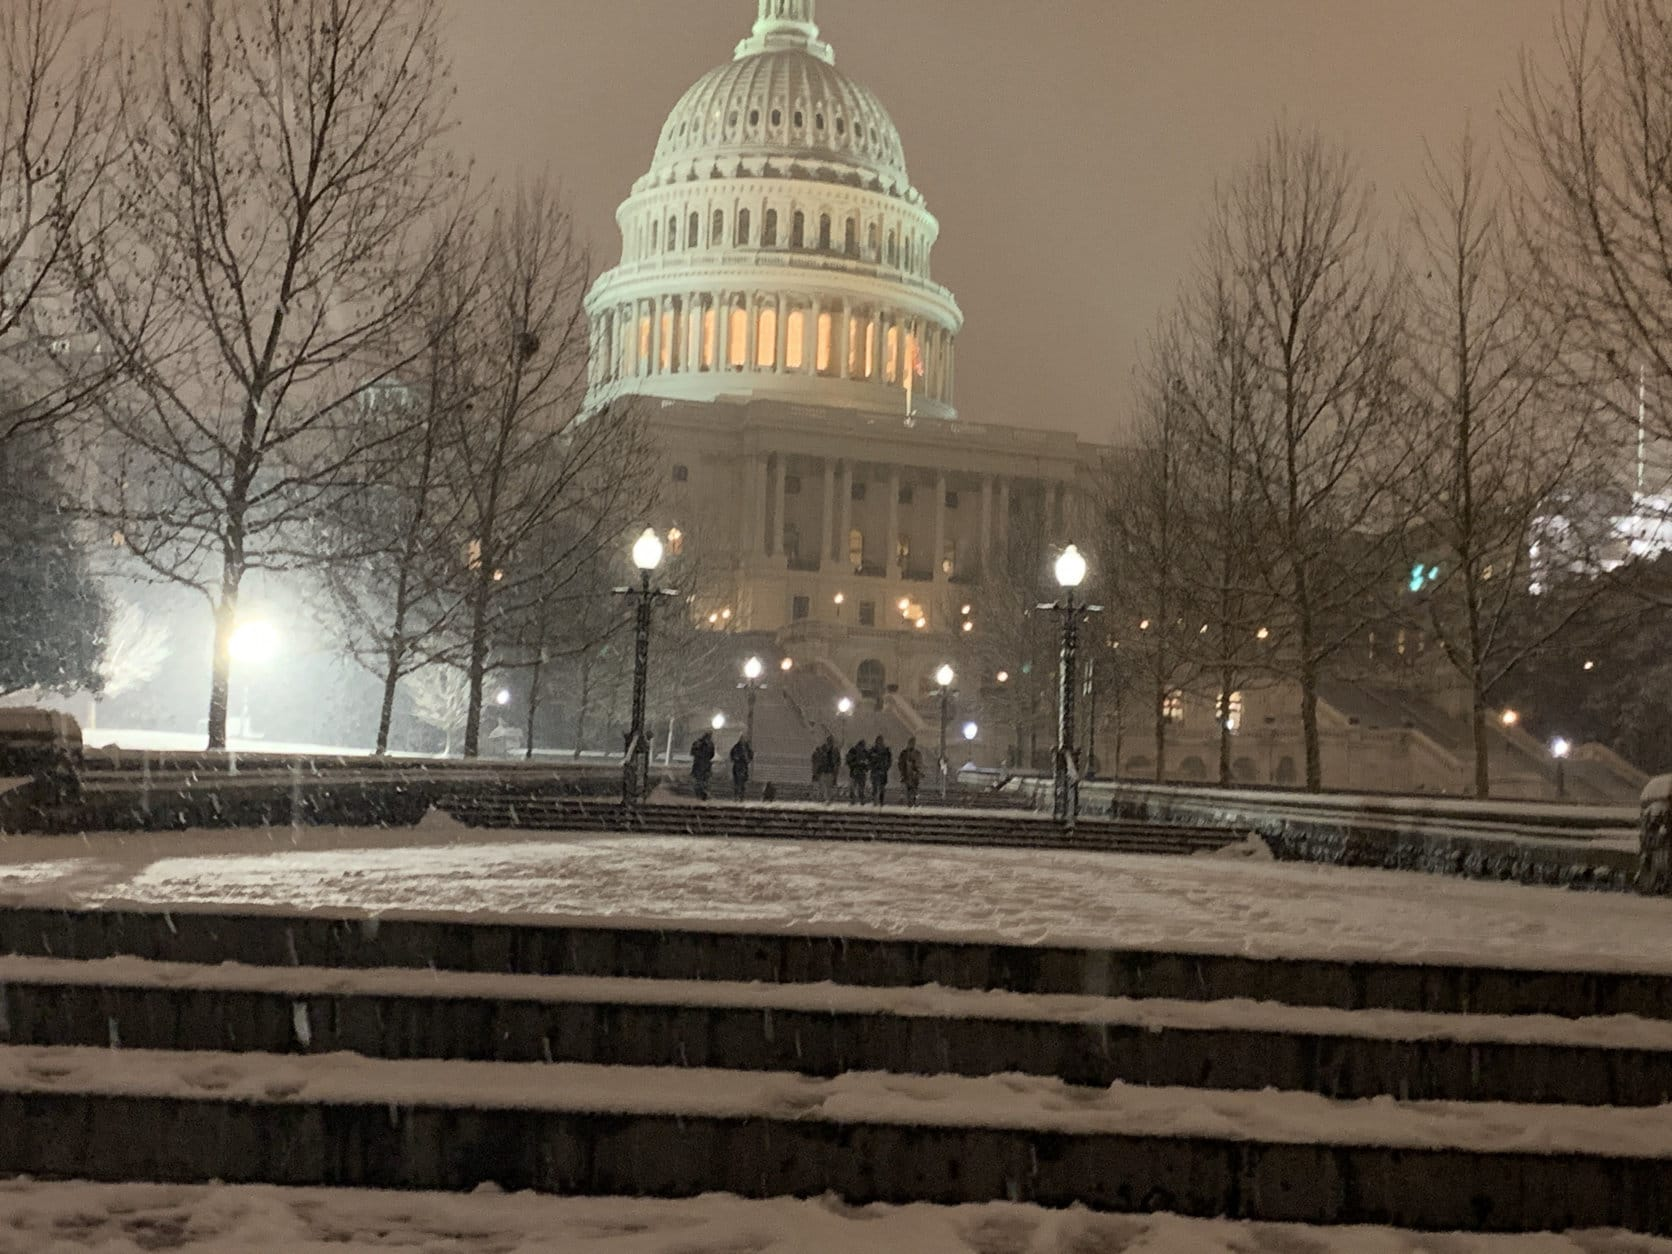 The U.S. Capitol is under a blanket of snow of Saturday, Jan. 12, 2019. (WTOP/Kyle Cooper)